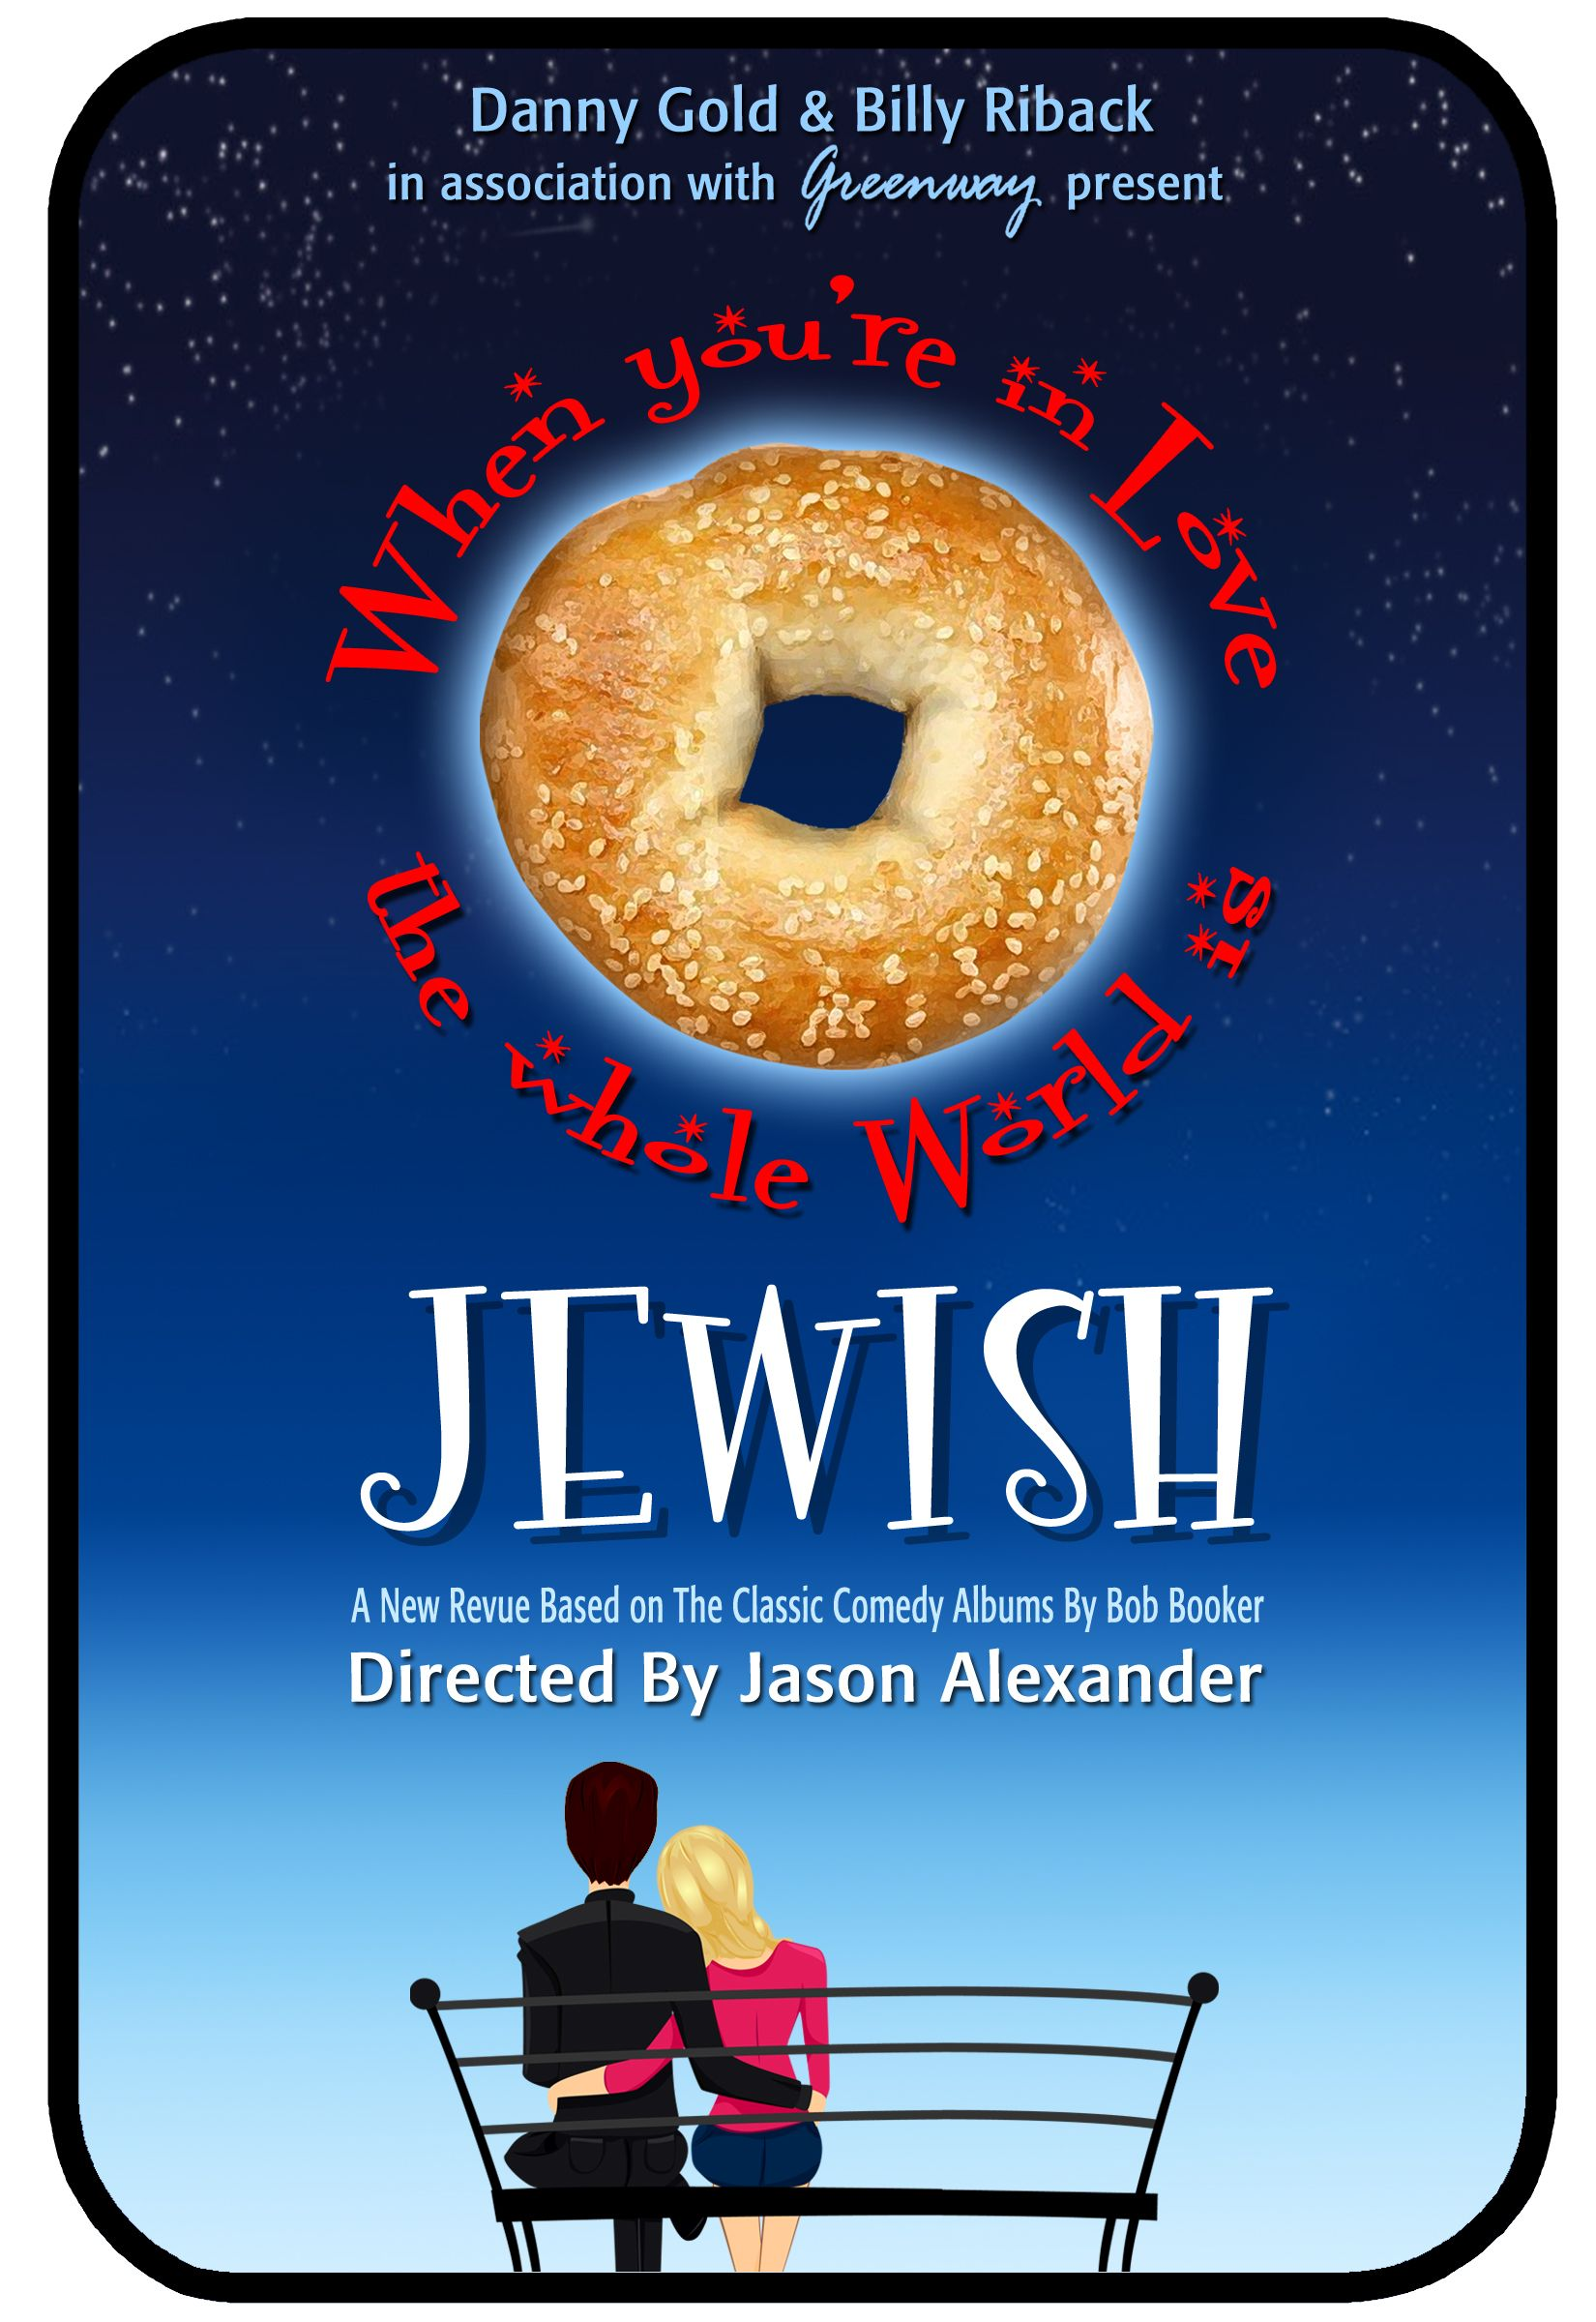 """When You're In Love, The Whole World Is Jewish"" Predestined For Success: SOLD OUT 6-Week Run"